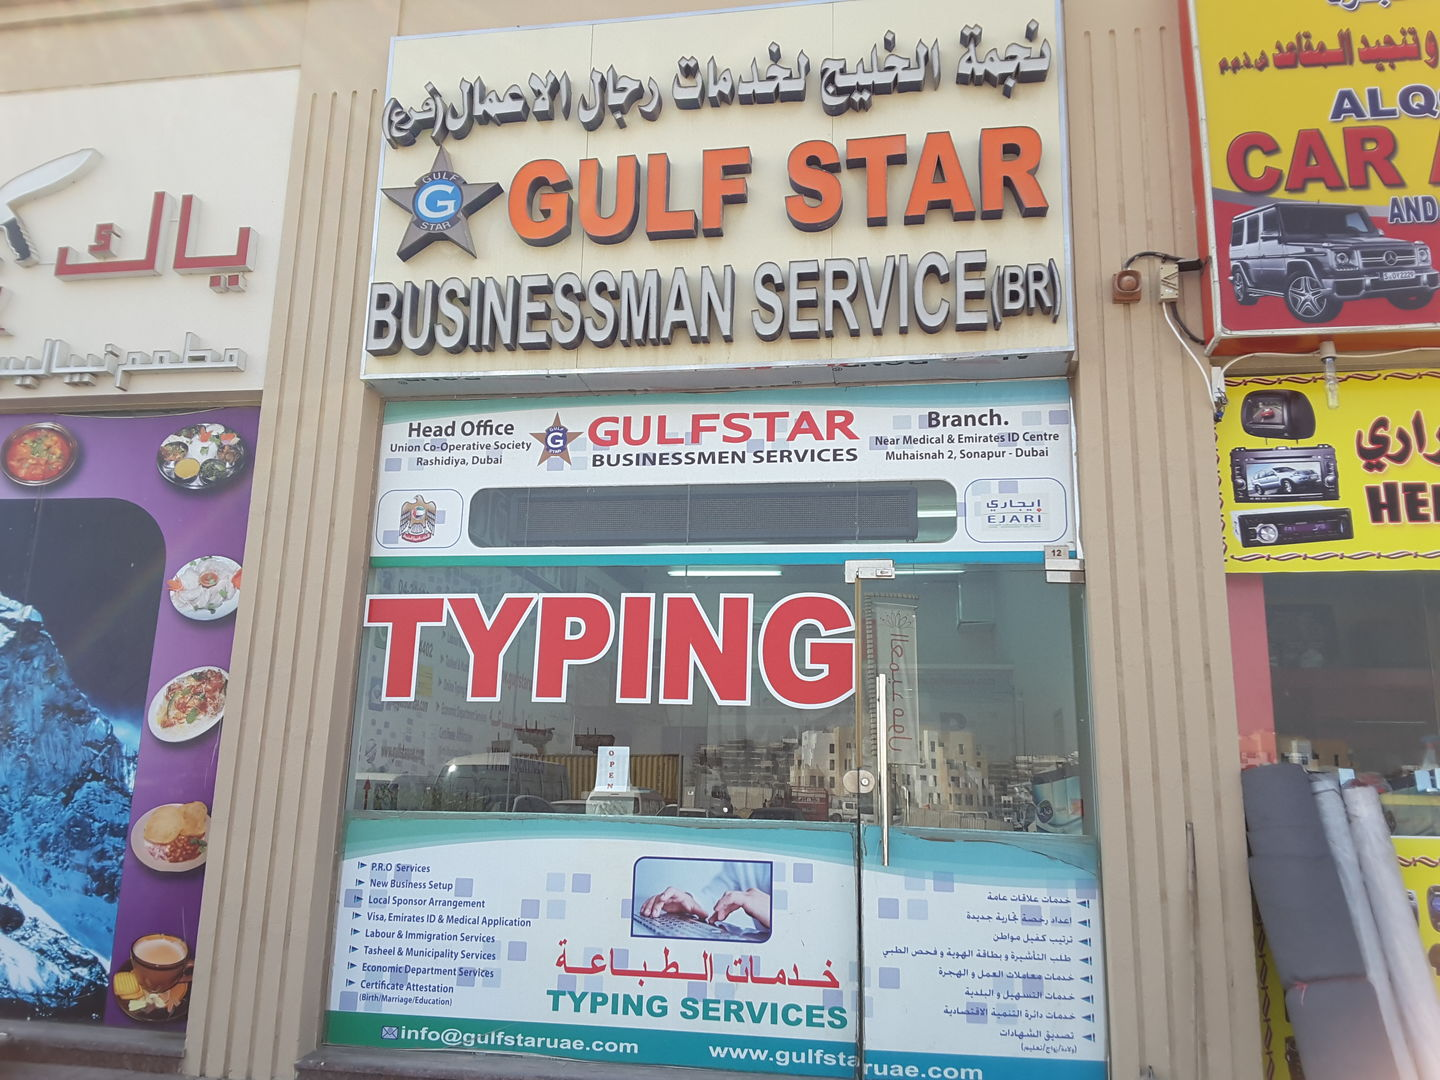 HiDubai-business-gulf-star-business-man-services-b2b-services-business-consultation-services-al-quoz-4-dubai-2